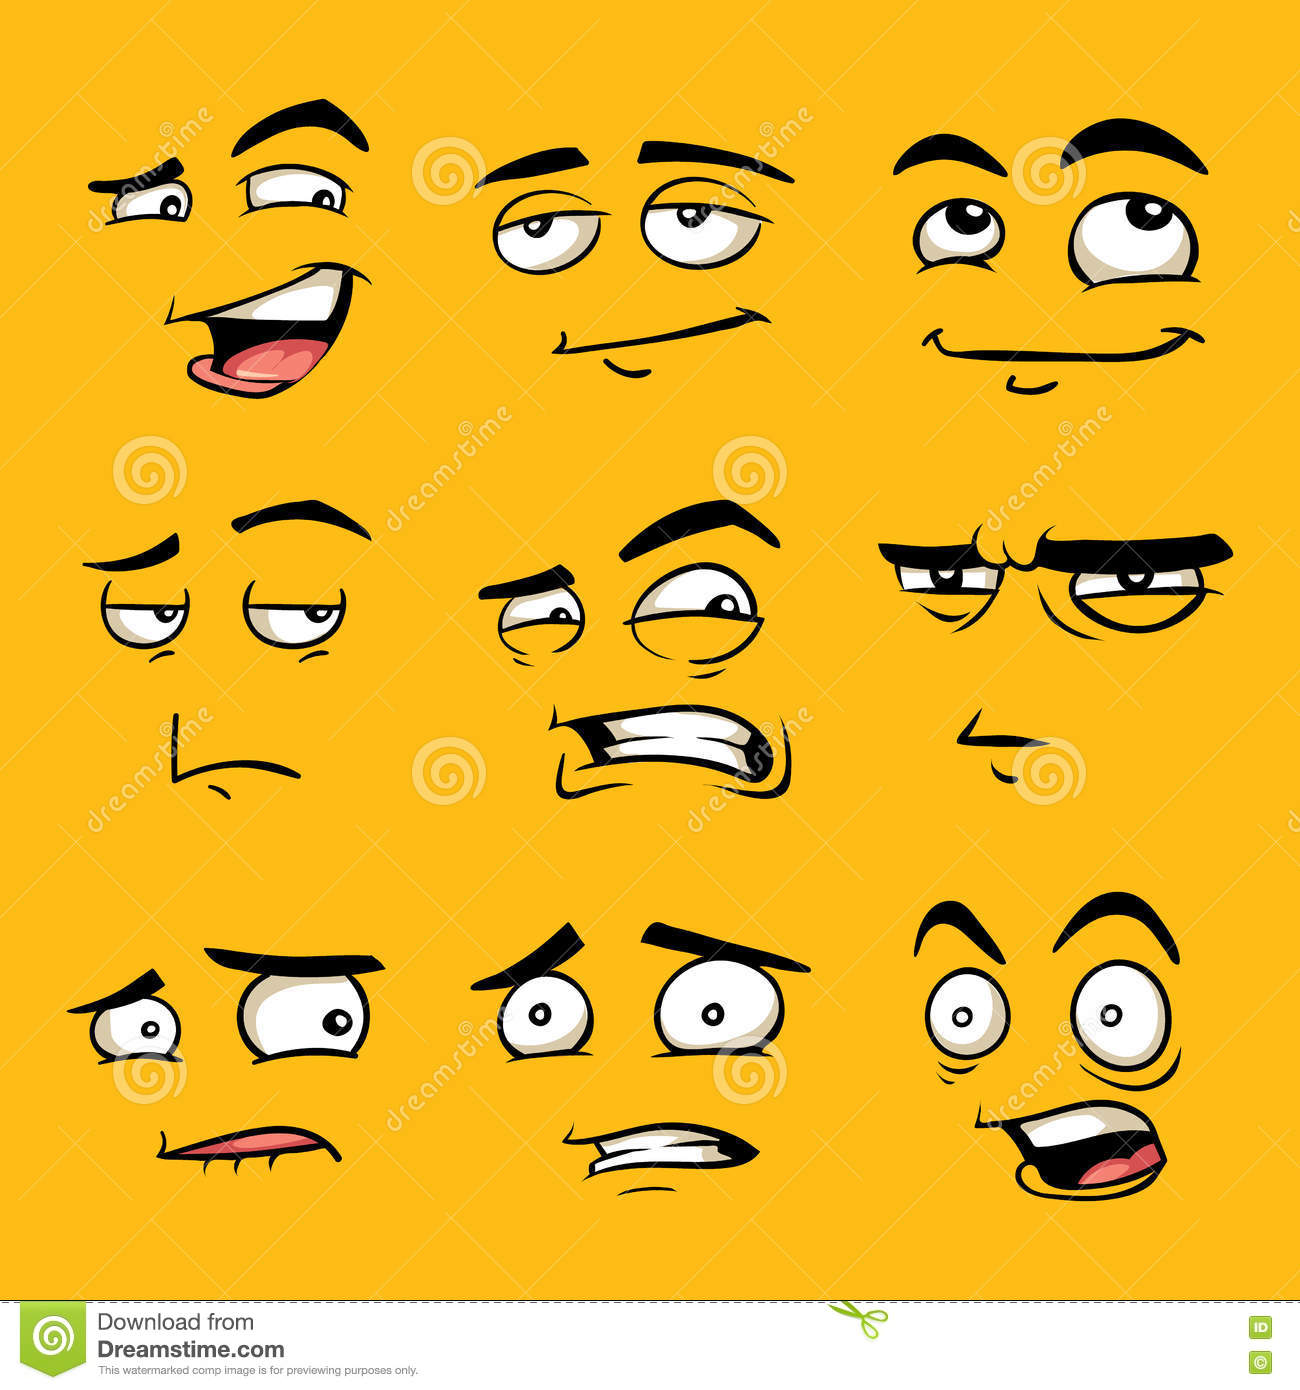 funny cartoon faces with emotions stock vector